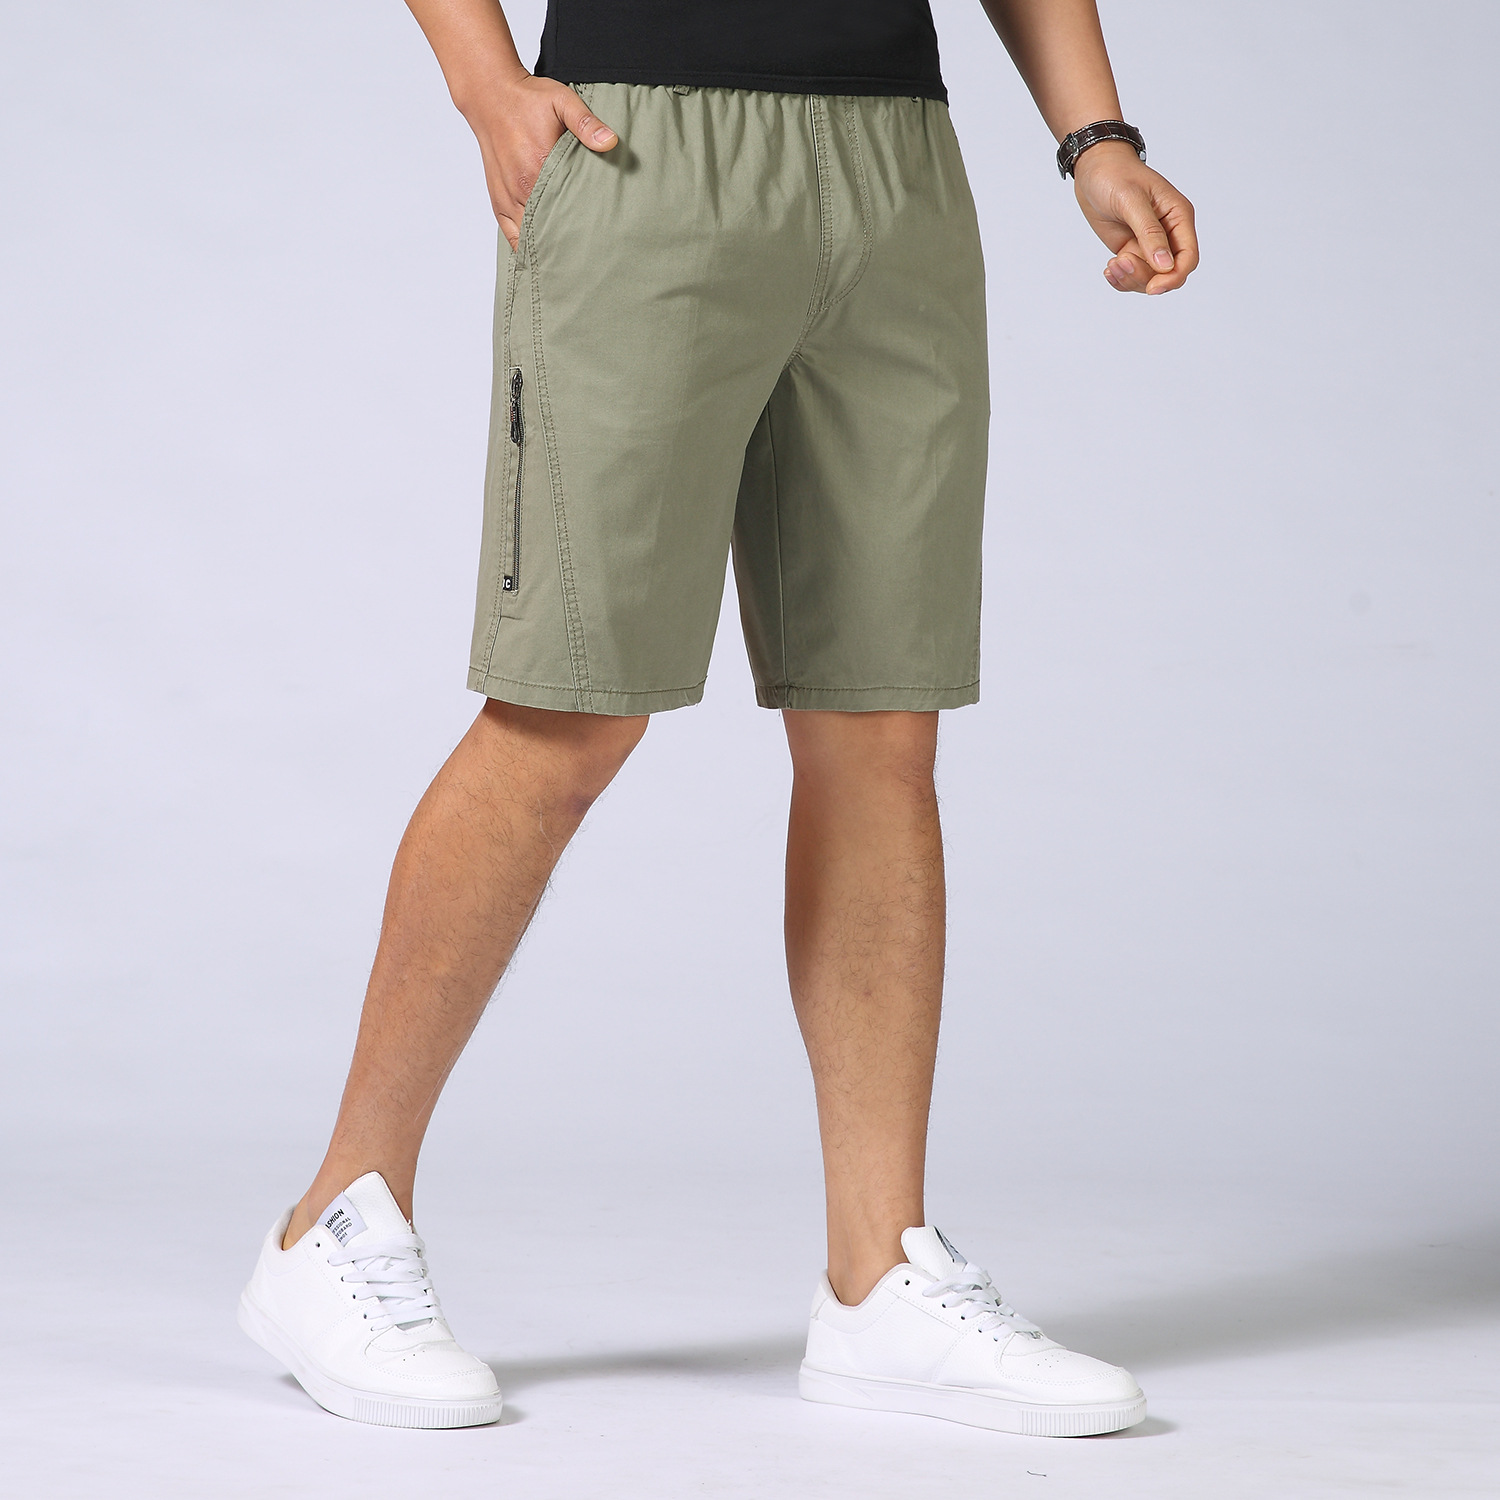 2018 Summer Mens Military Cargo Shorts Plus Size Work Casual Loose Khaki Solid 100% Cotton Short Pants Top Selling